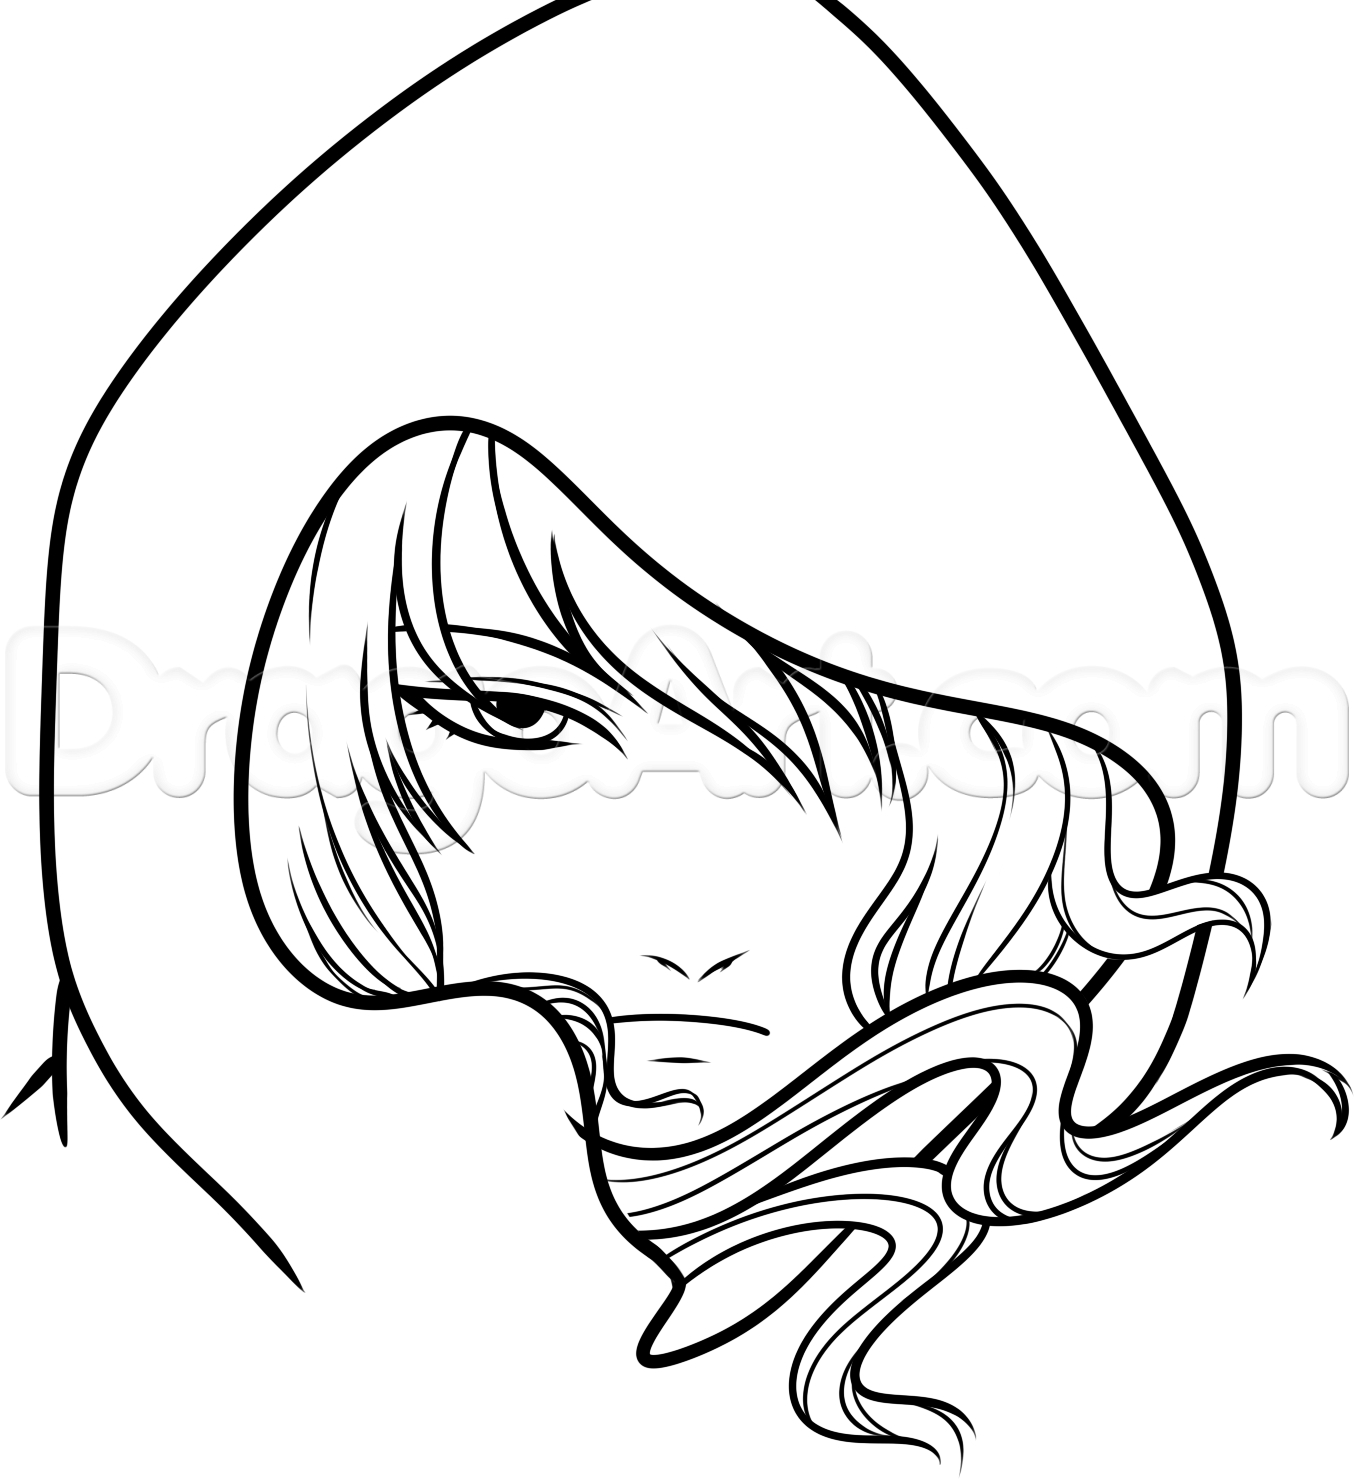 1354x1479 Cool Anime Characters To Draw How To Draw A Hooded Anime Character